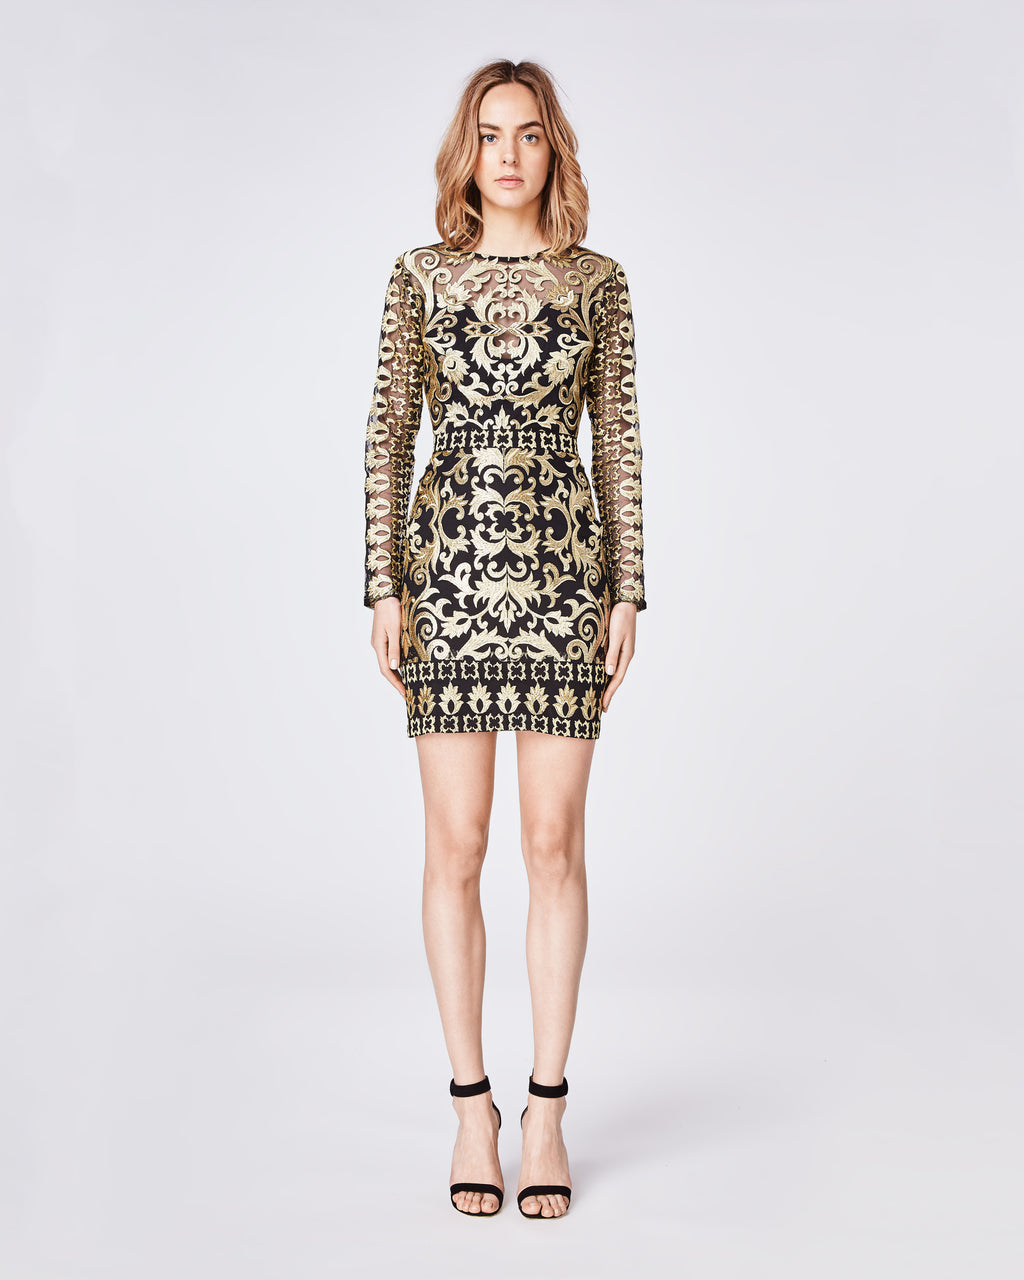 CF10267 - SCROLL EMBROIDERY LONG SLEEVE ILLUSION DRESS - dresses - short - Downtown rocker meets uptown chic in this structured, longsleeve statement dress. It feautures a center back concealed zipper with hook and eye closure. Final Sale